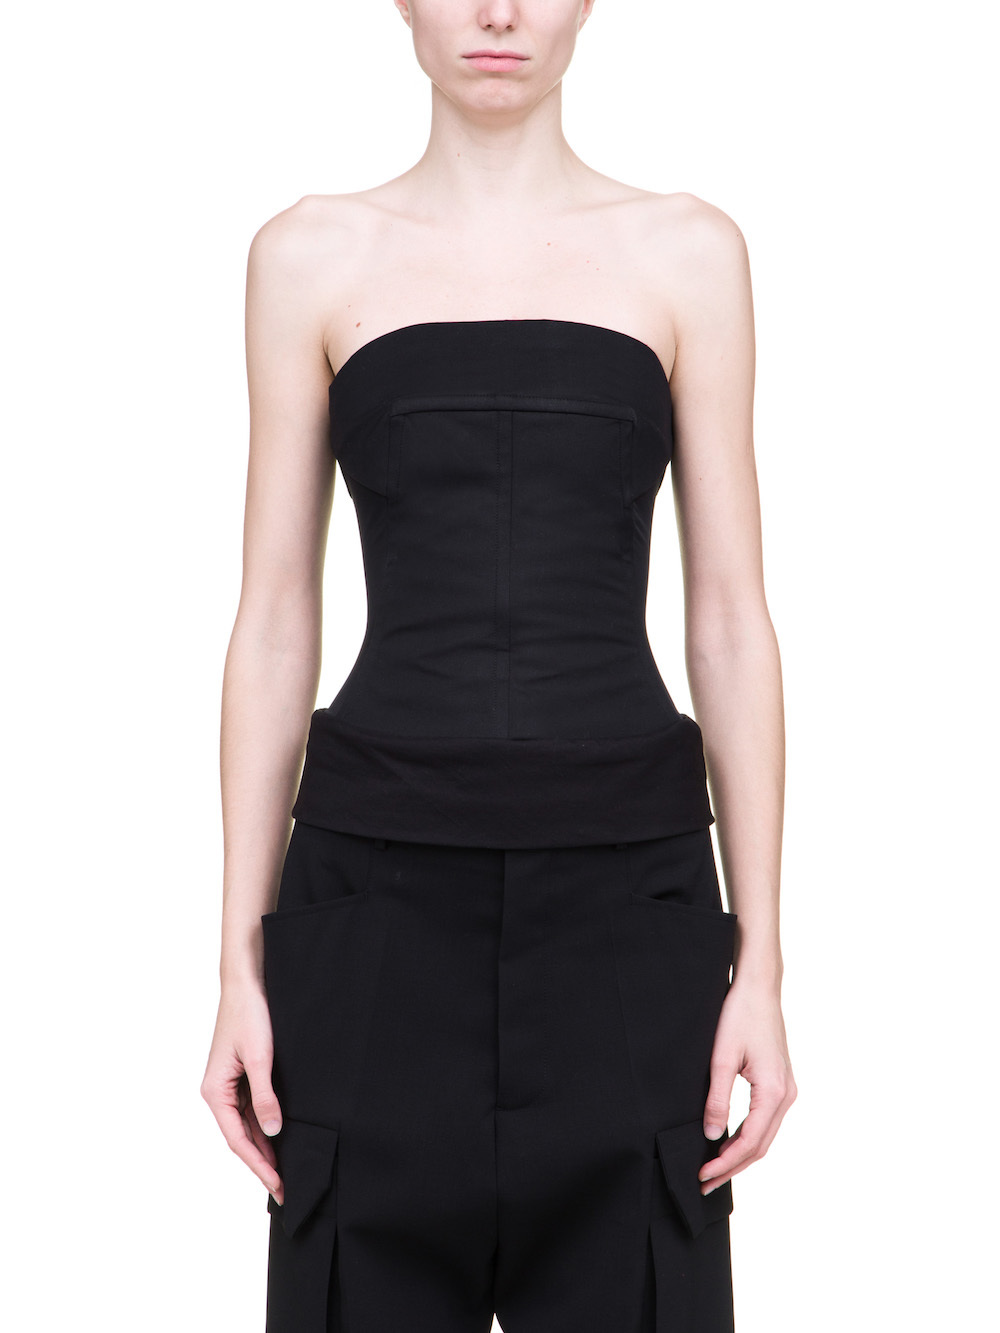 RICK OWENS BUSTIER TOP IN BLACK